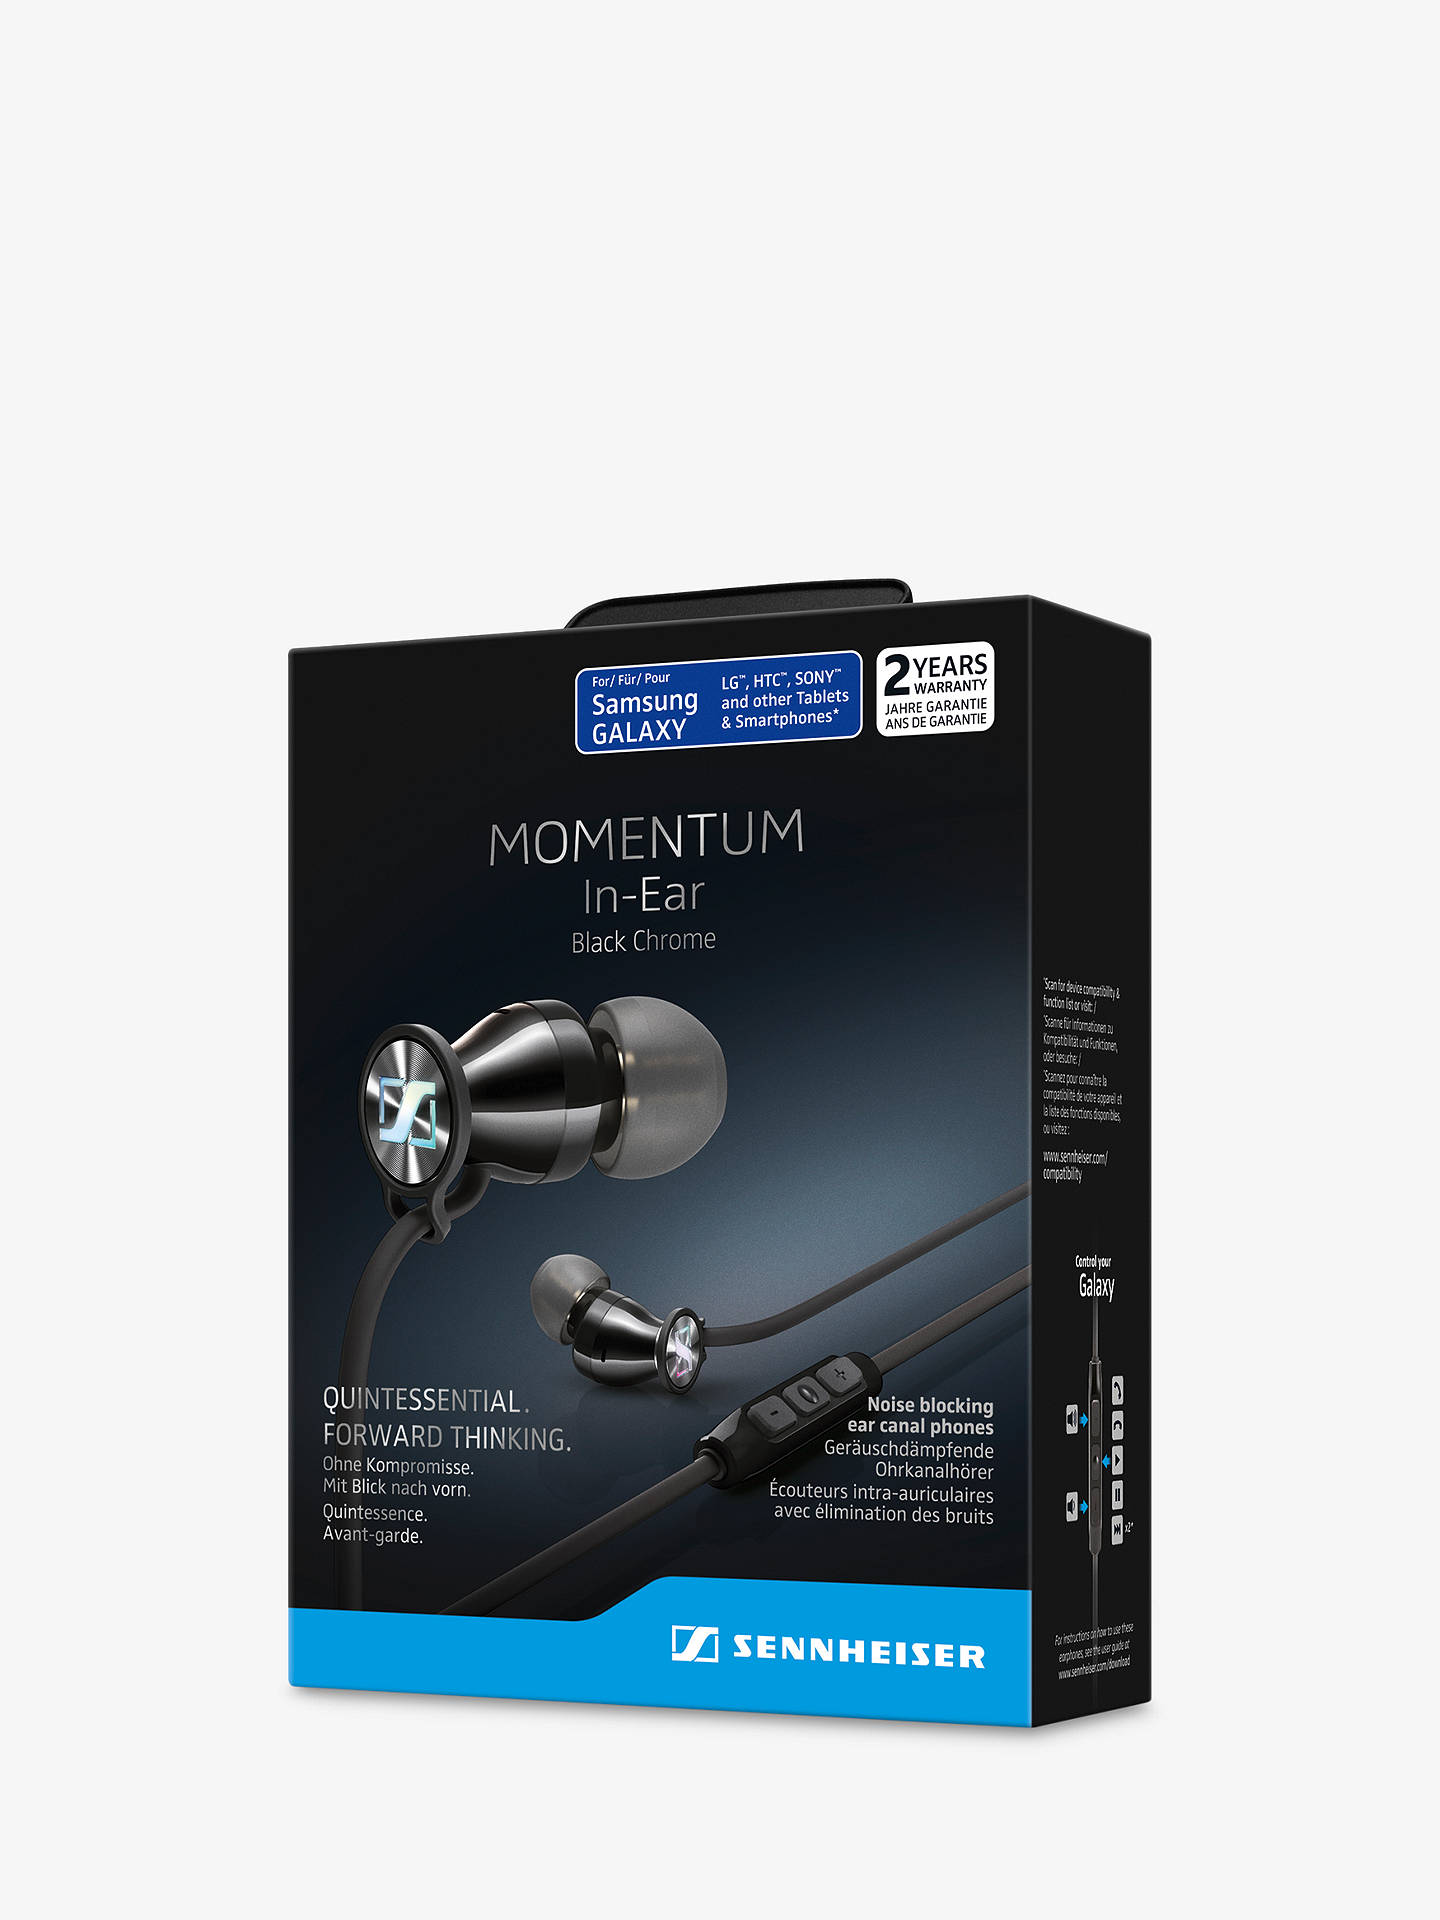 BuySennheiser MOMENTUM 2.0 G In-Ear Headphones with Mic/Remote for Android Devices, Black/Chrome Online at johnlewis.com